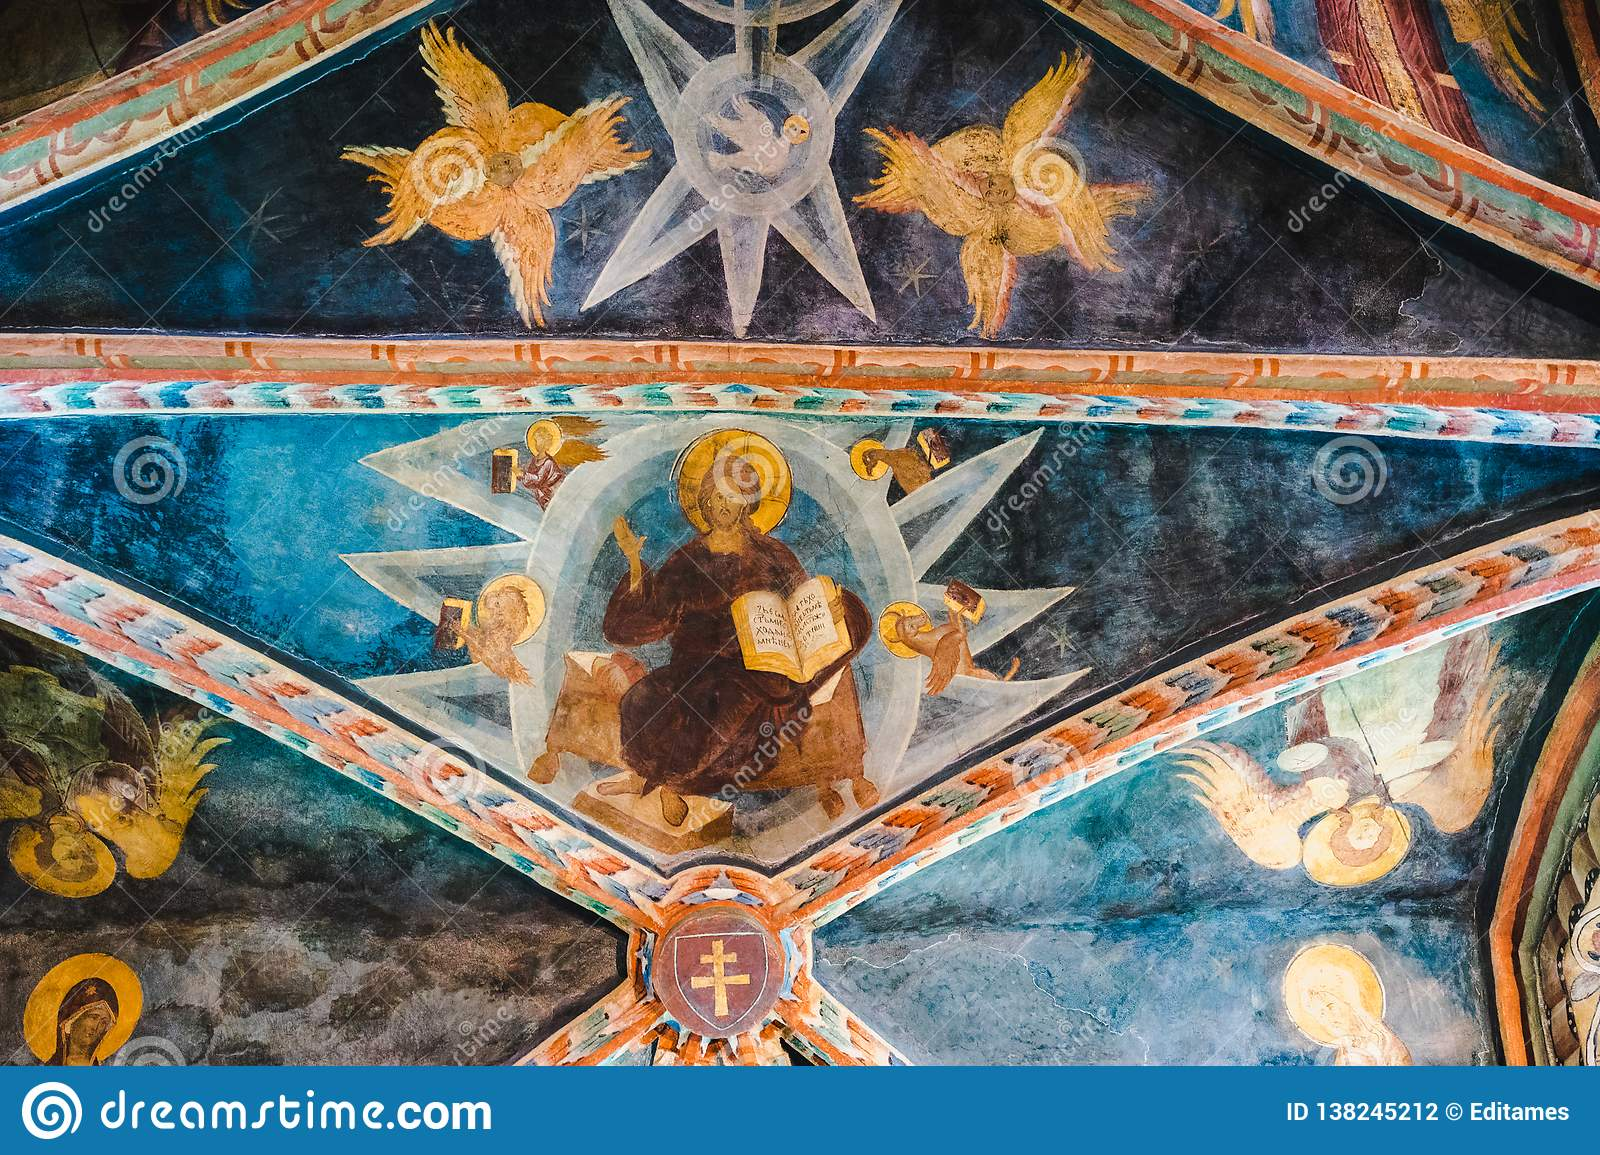 Ceiling frescoes - with Christ, angels and pigeon